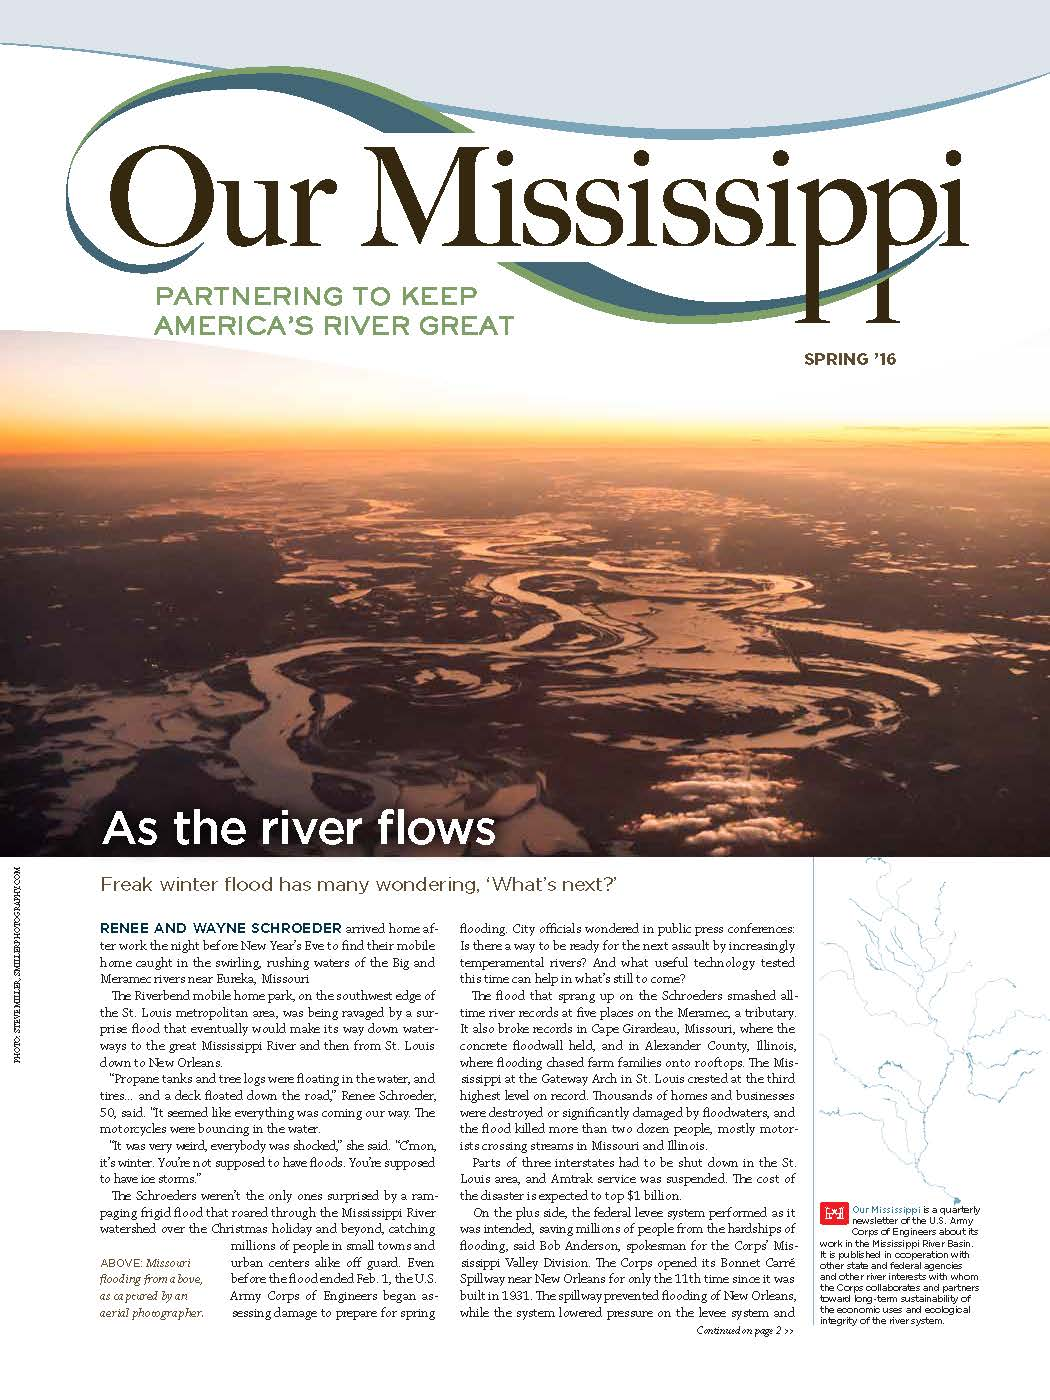 Current issue of Our Mississippi.